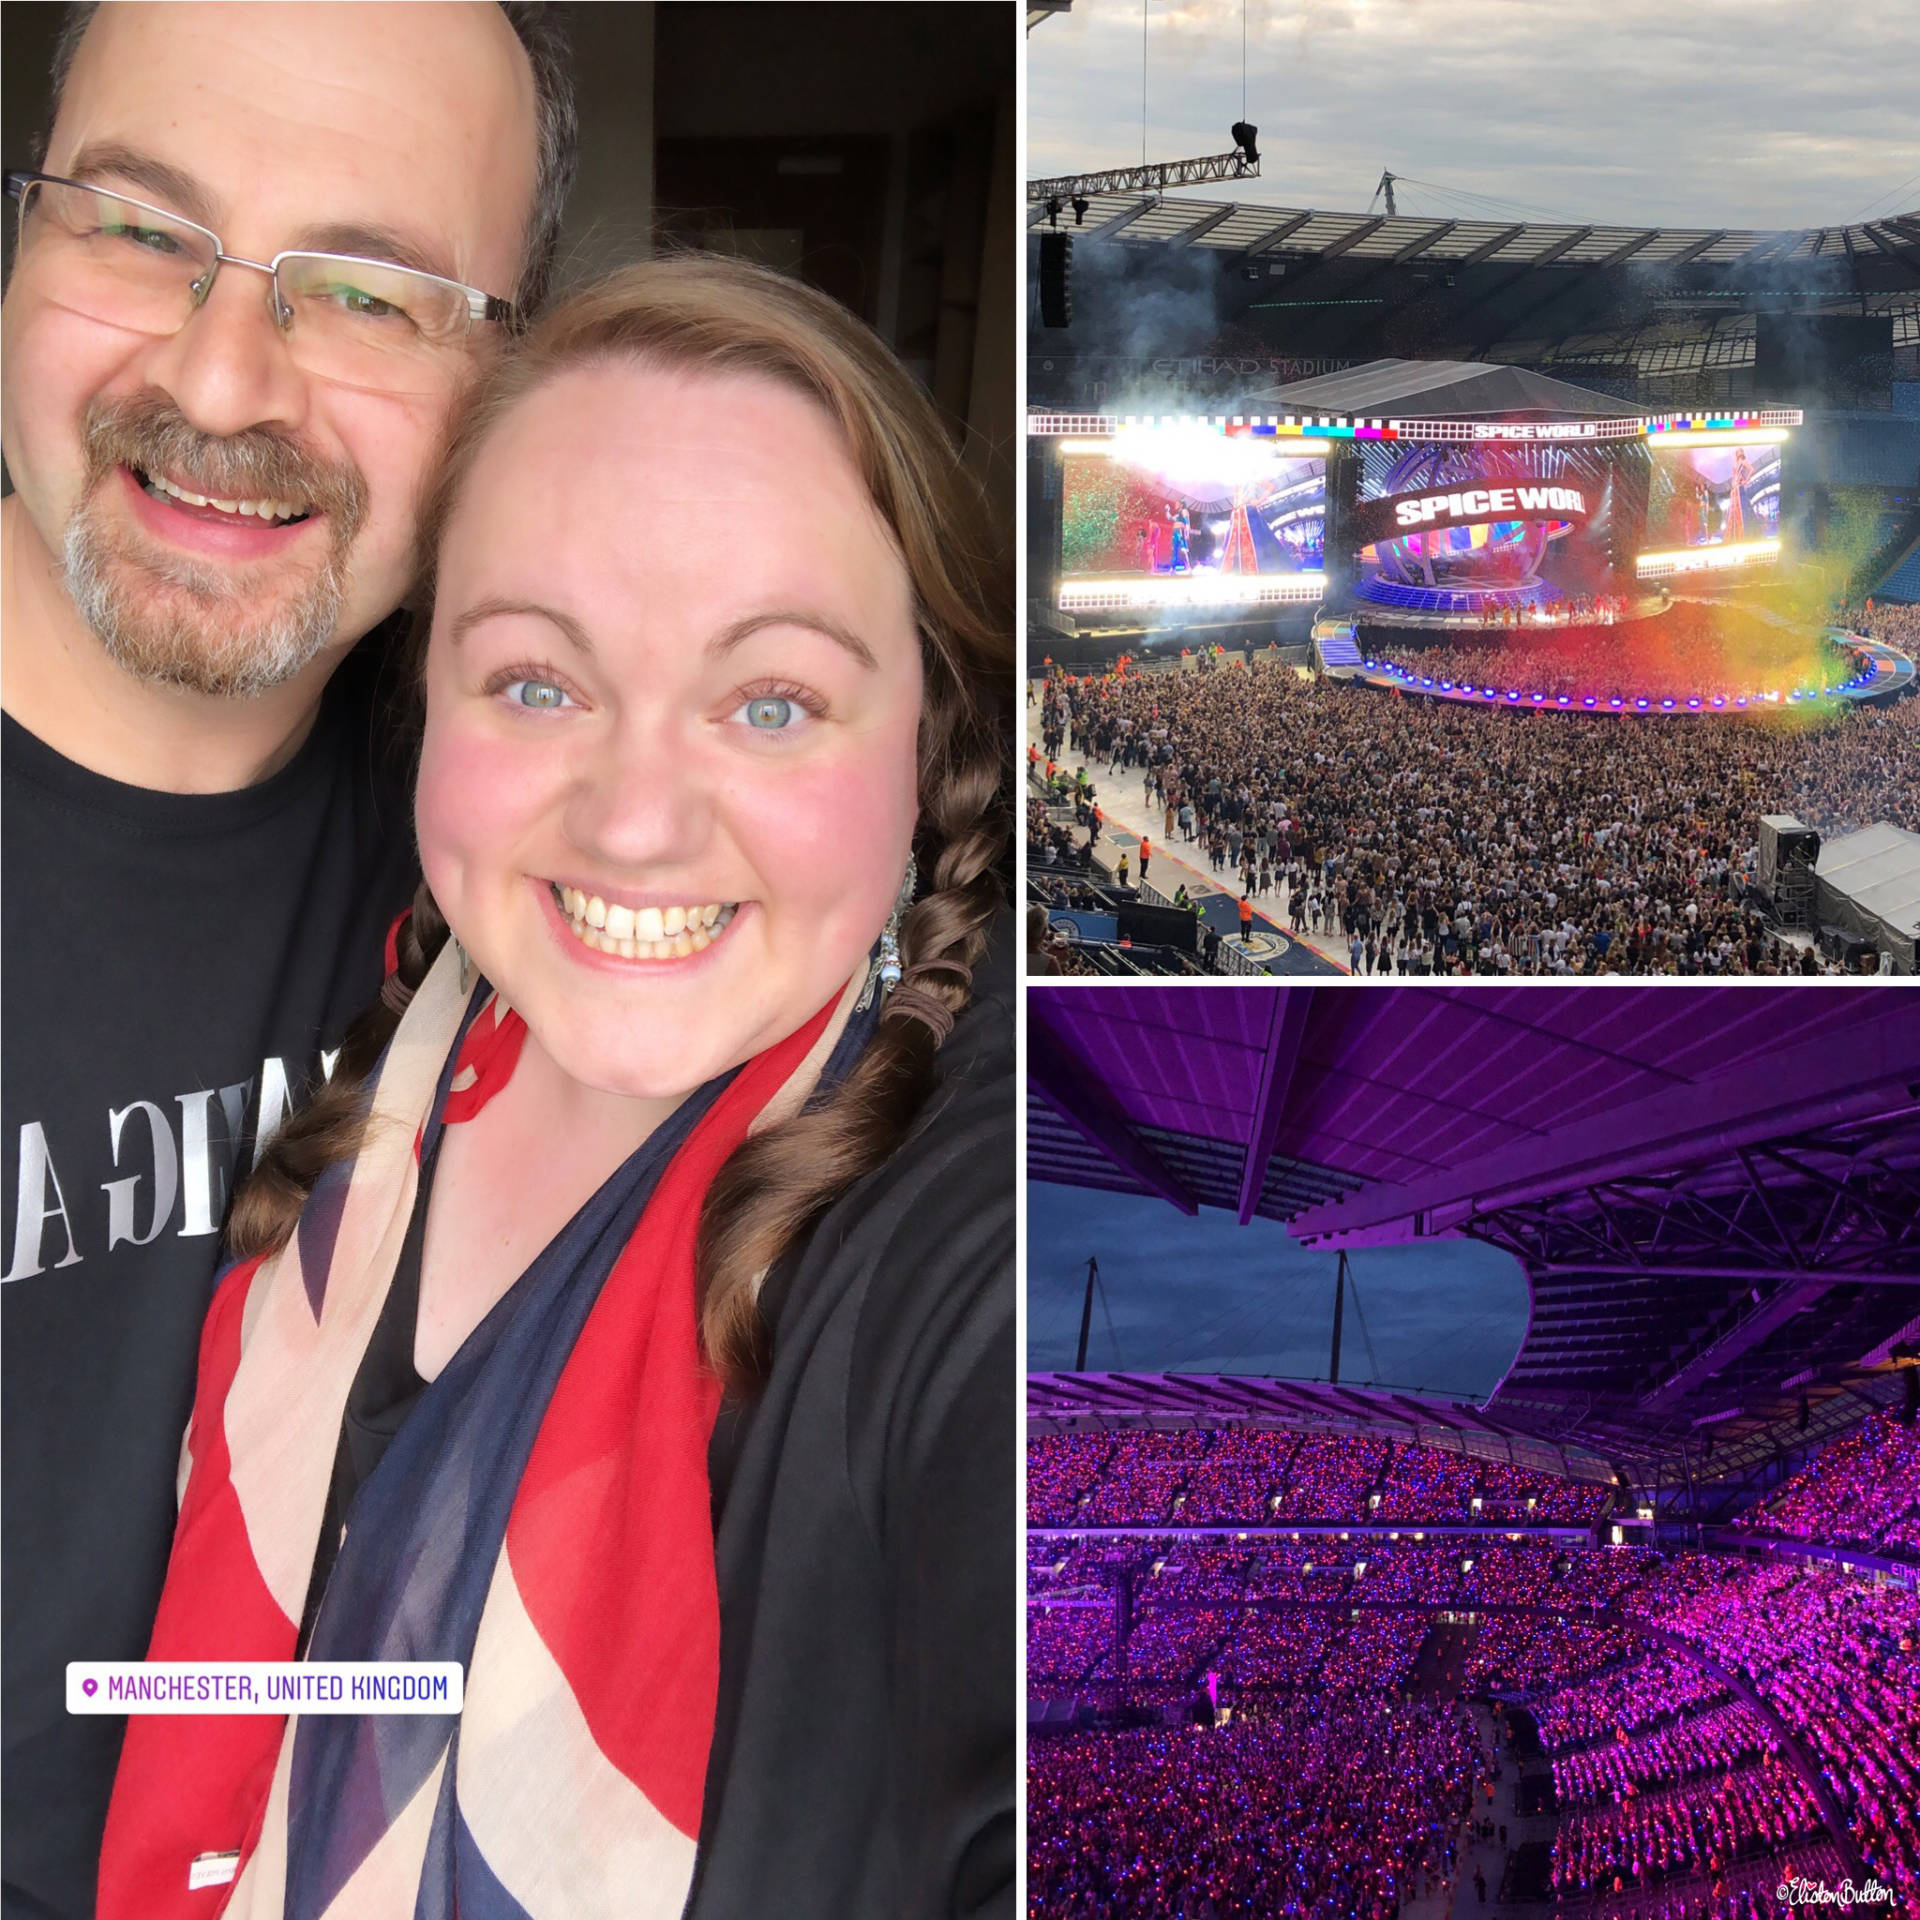 Spice Girls Concert - Manchester Etihad Stadium 2019 - Moments of Magic at www.elistonbutton.com - Eliston Button - A Treasure Trove of Creativity, Colour and Adventure.